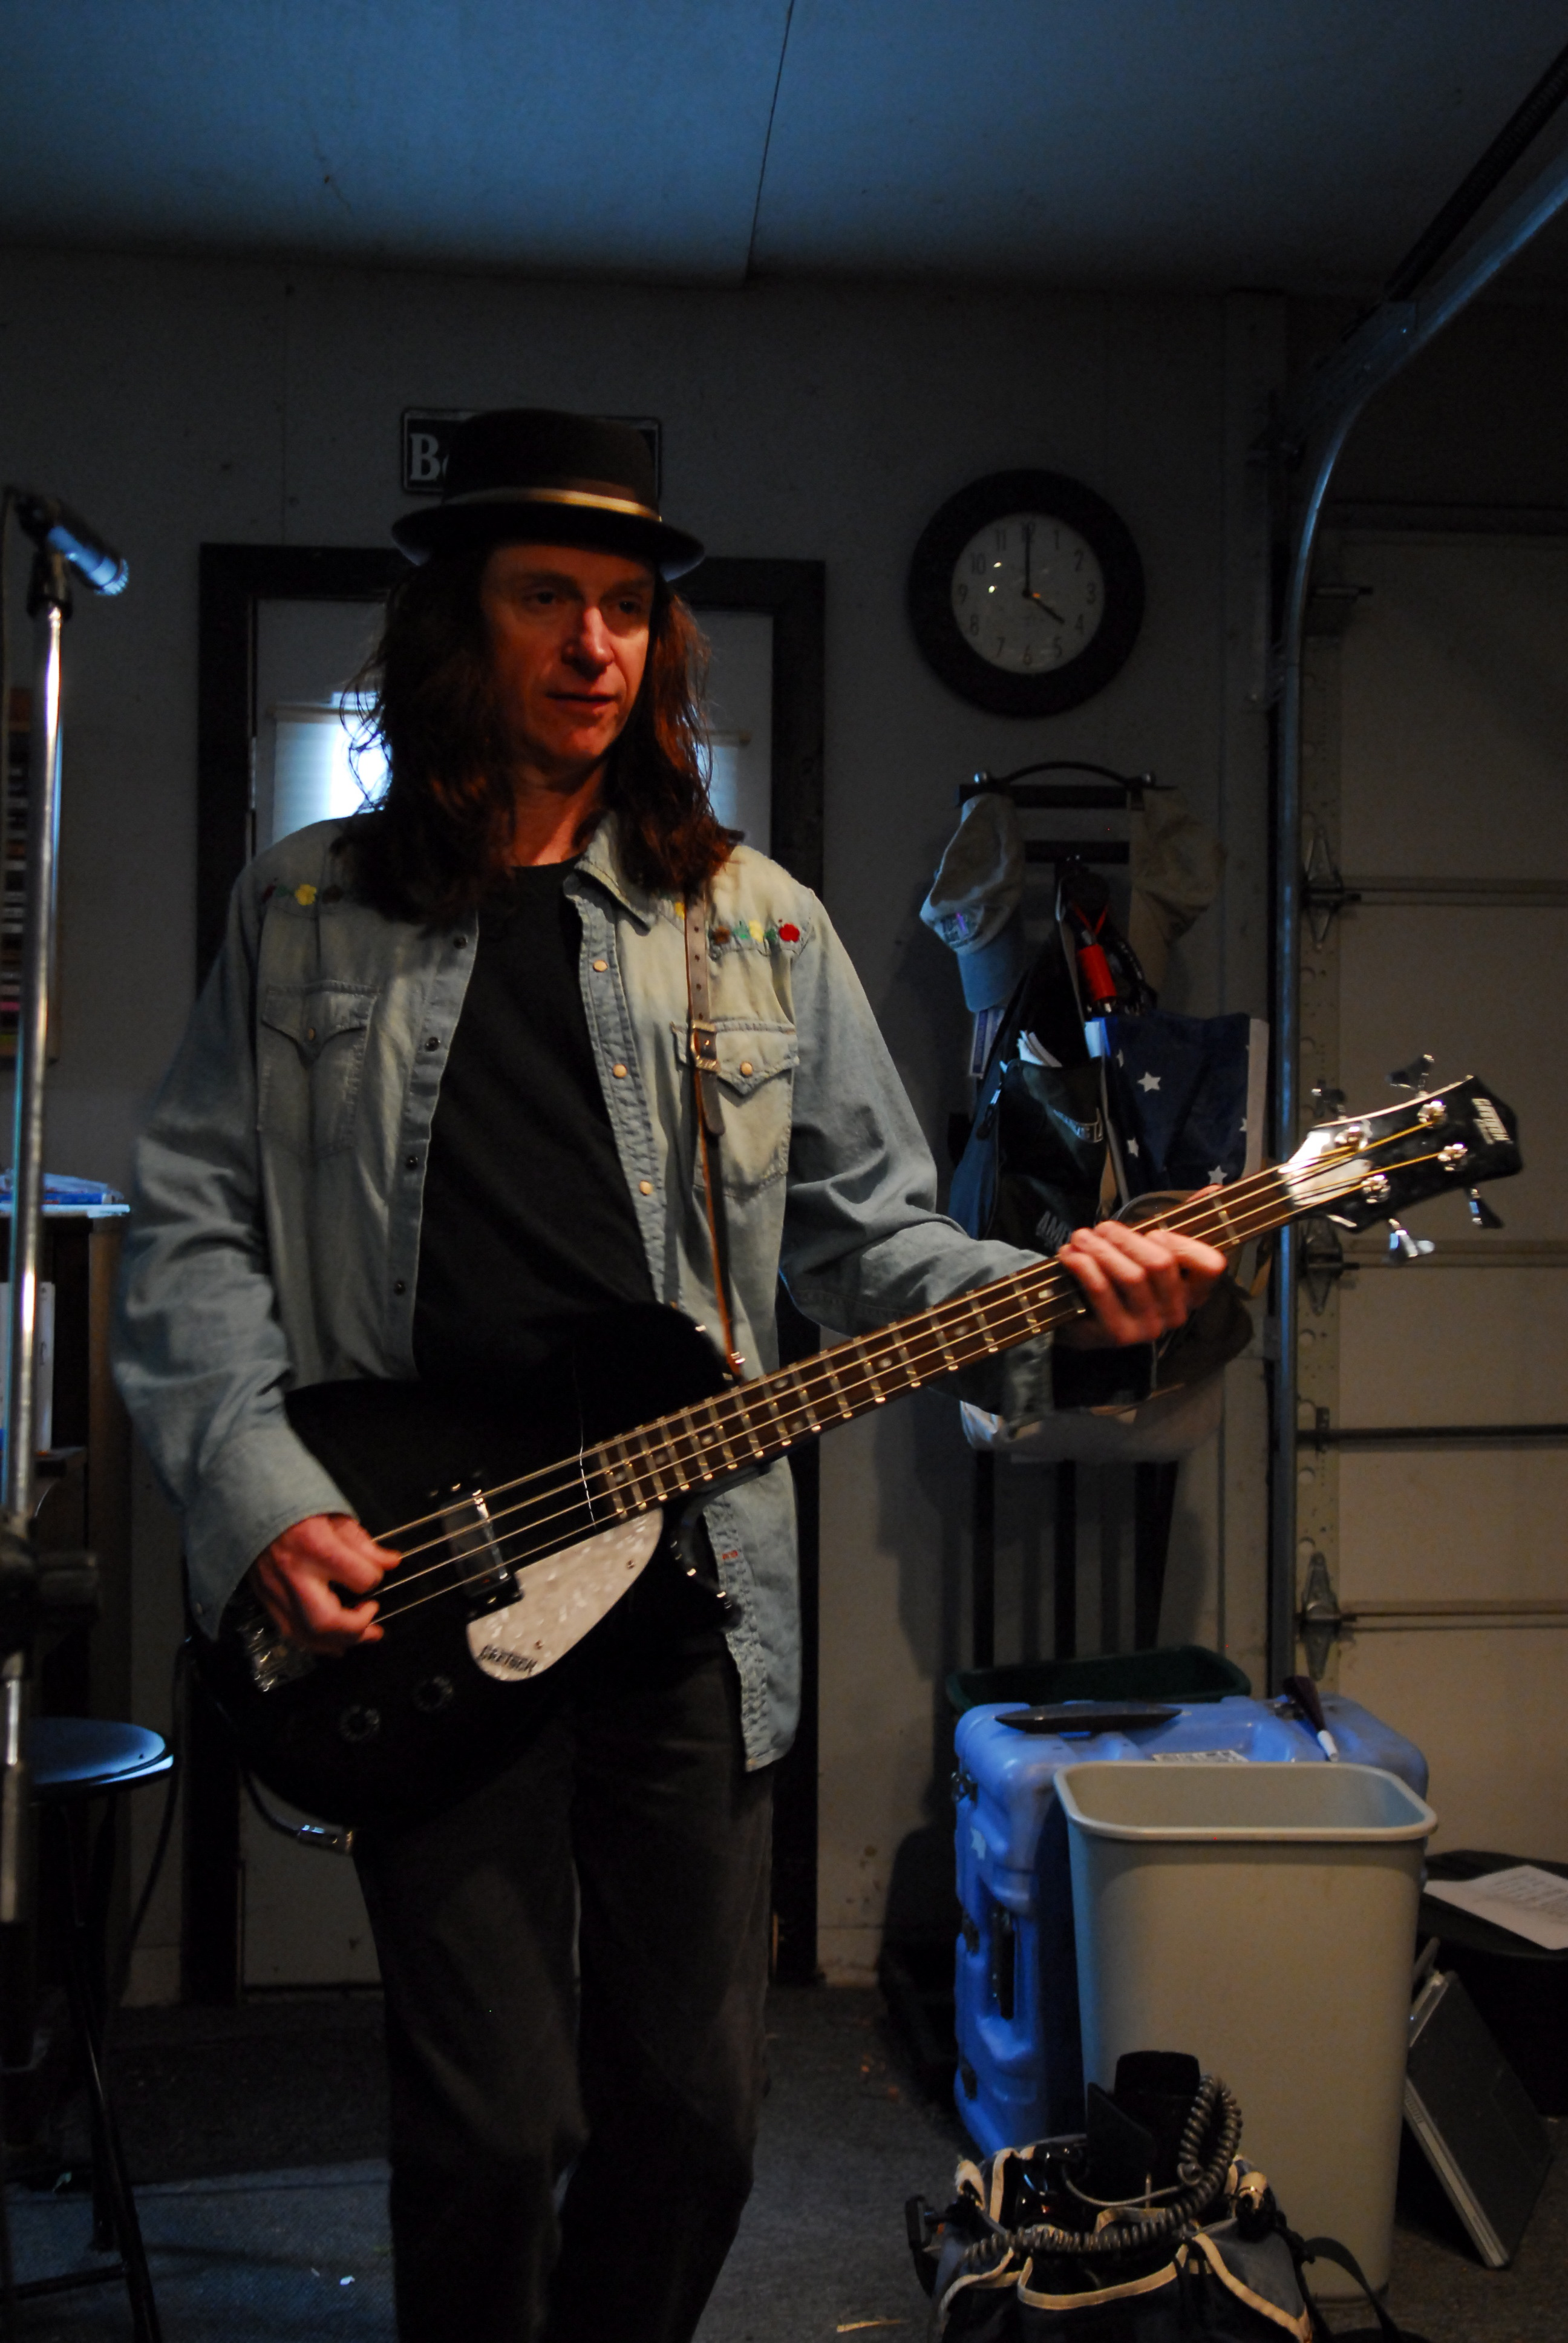 Keith w Gretsch bass